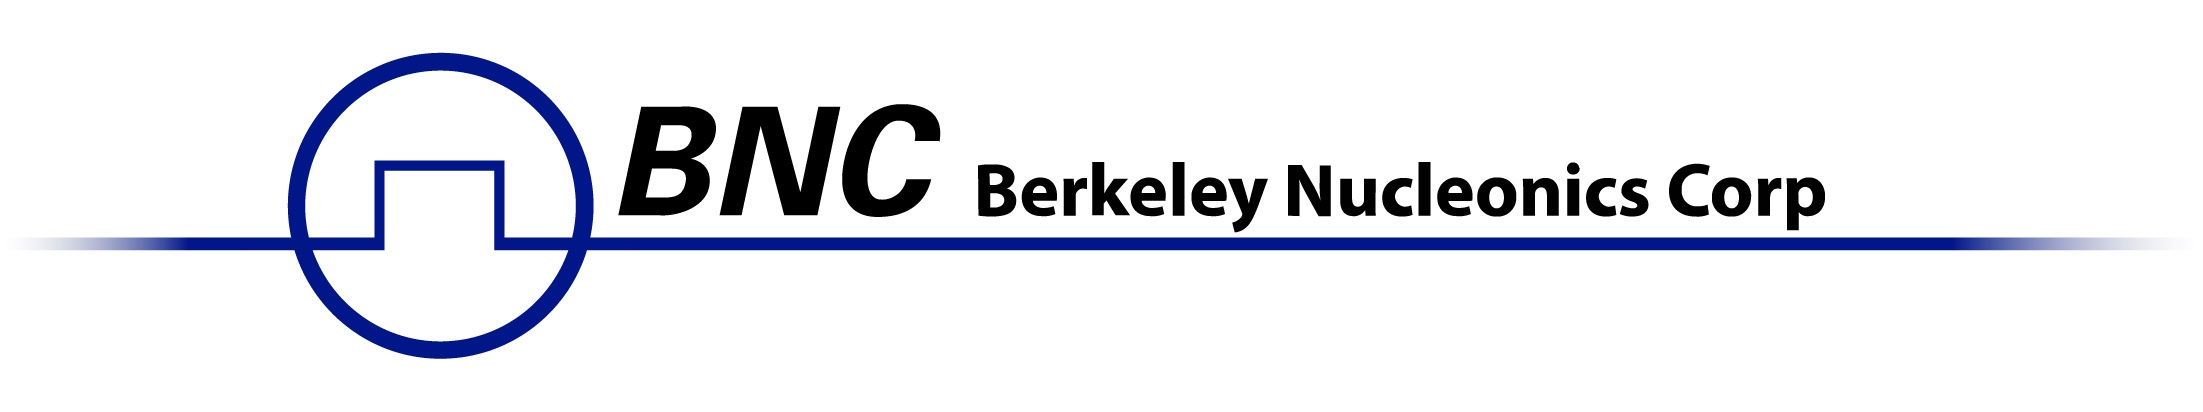 Berkeley Nucleonics Corporation (BNC)